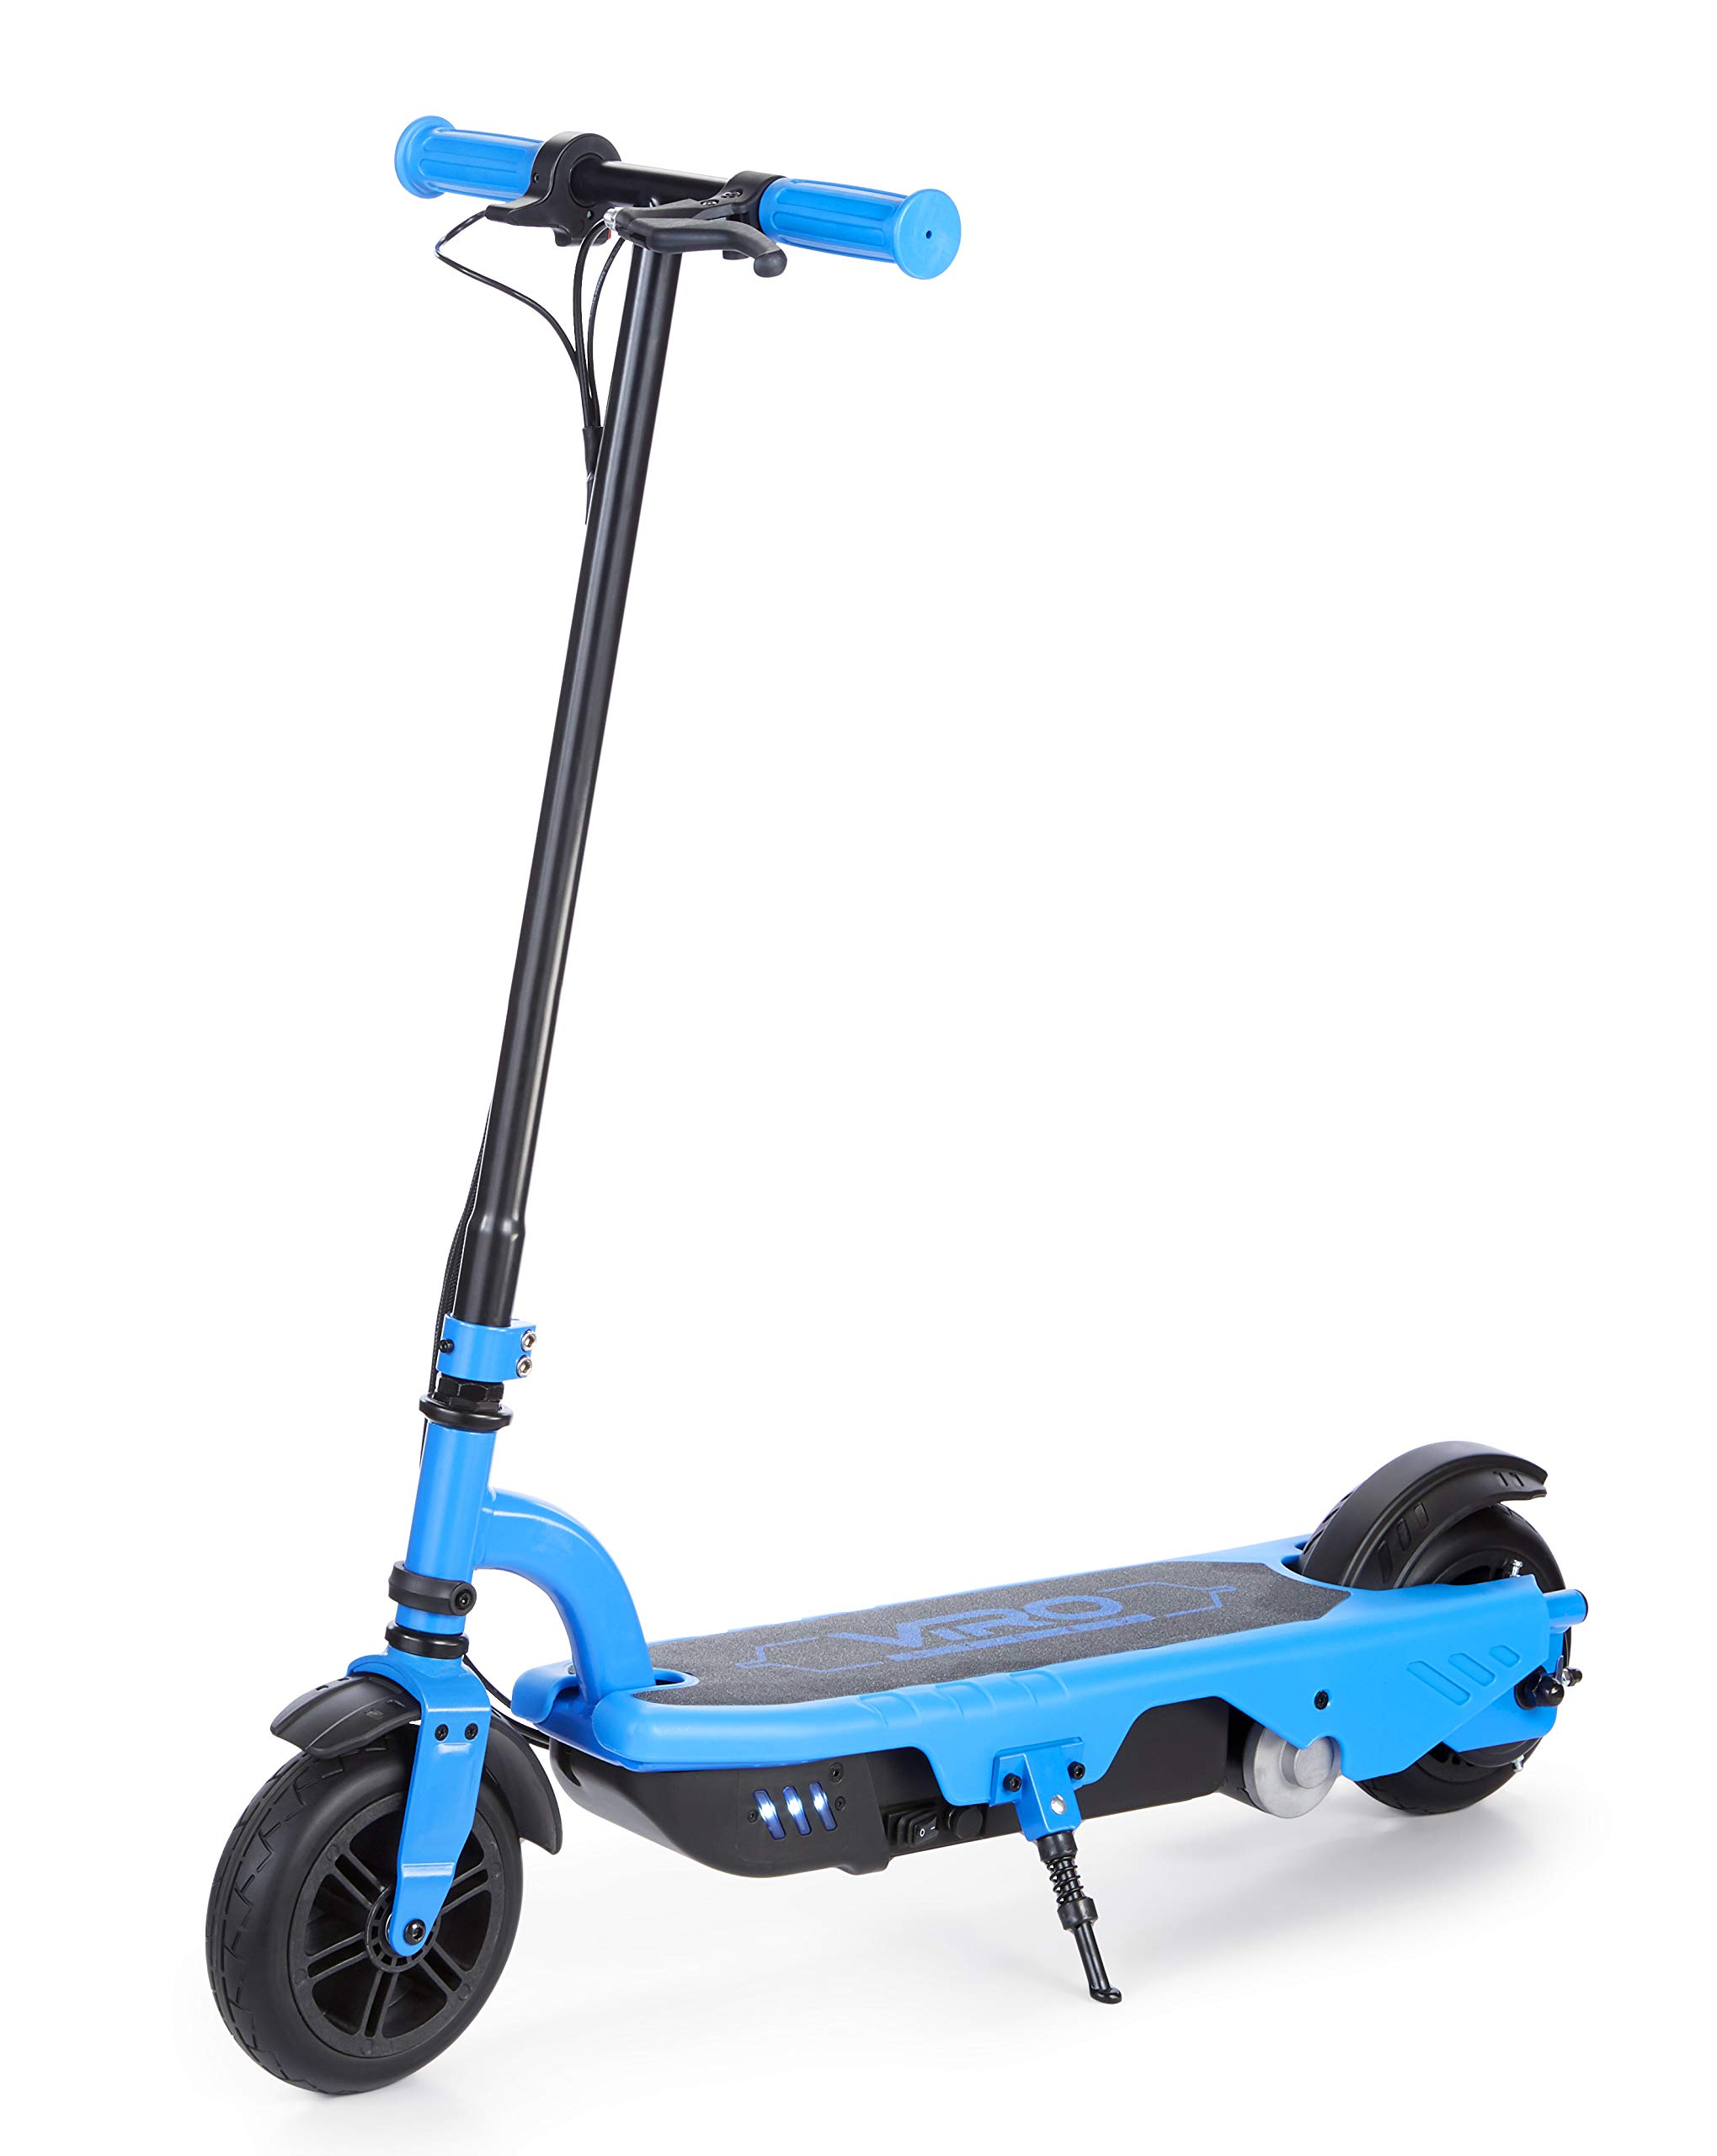 Viro Rides VR 550E Rechargeable Electric Scooter - Ride On Ul 2272 Certified by VIRO Rides